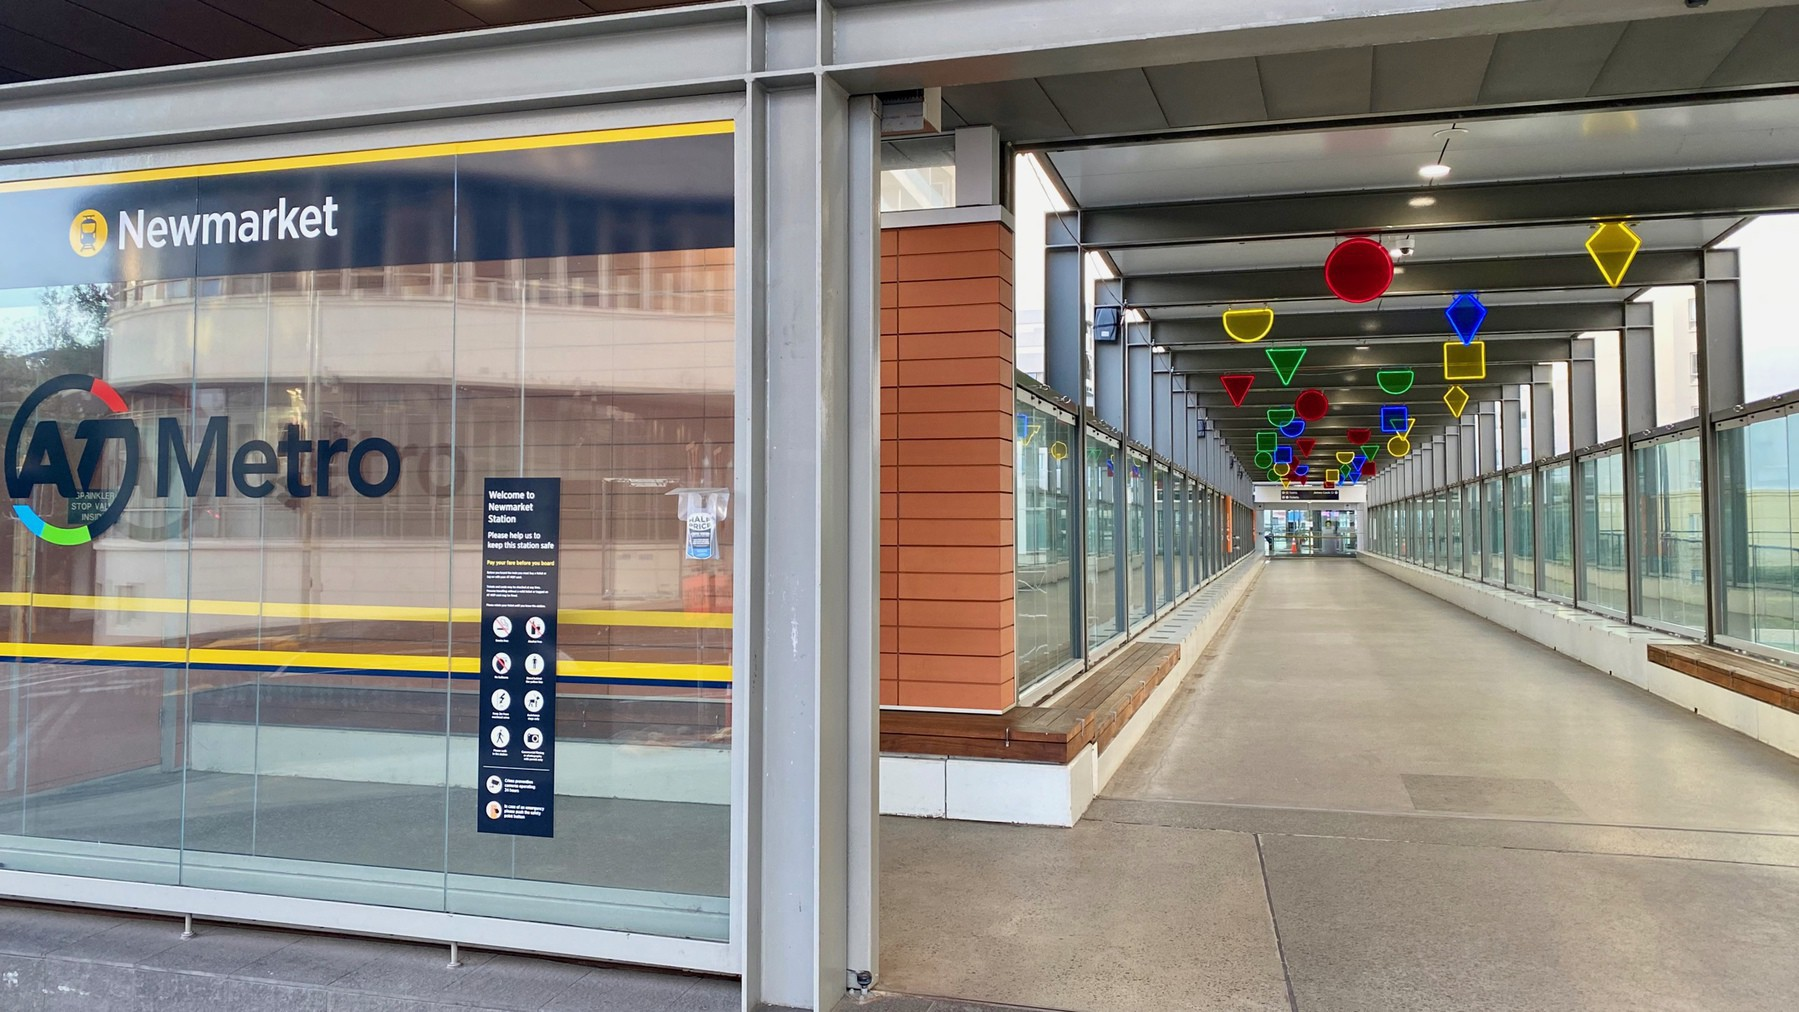 Auckland's Newmarket metro station was completely empty